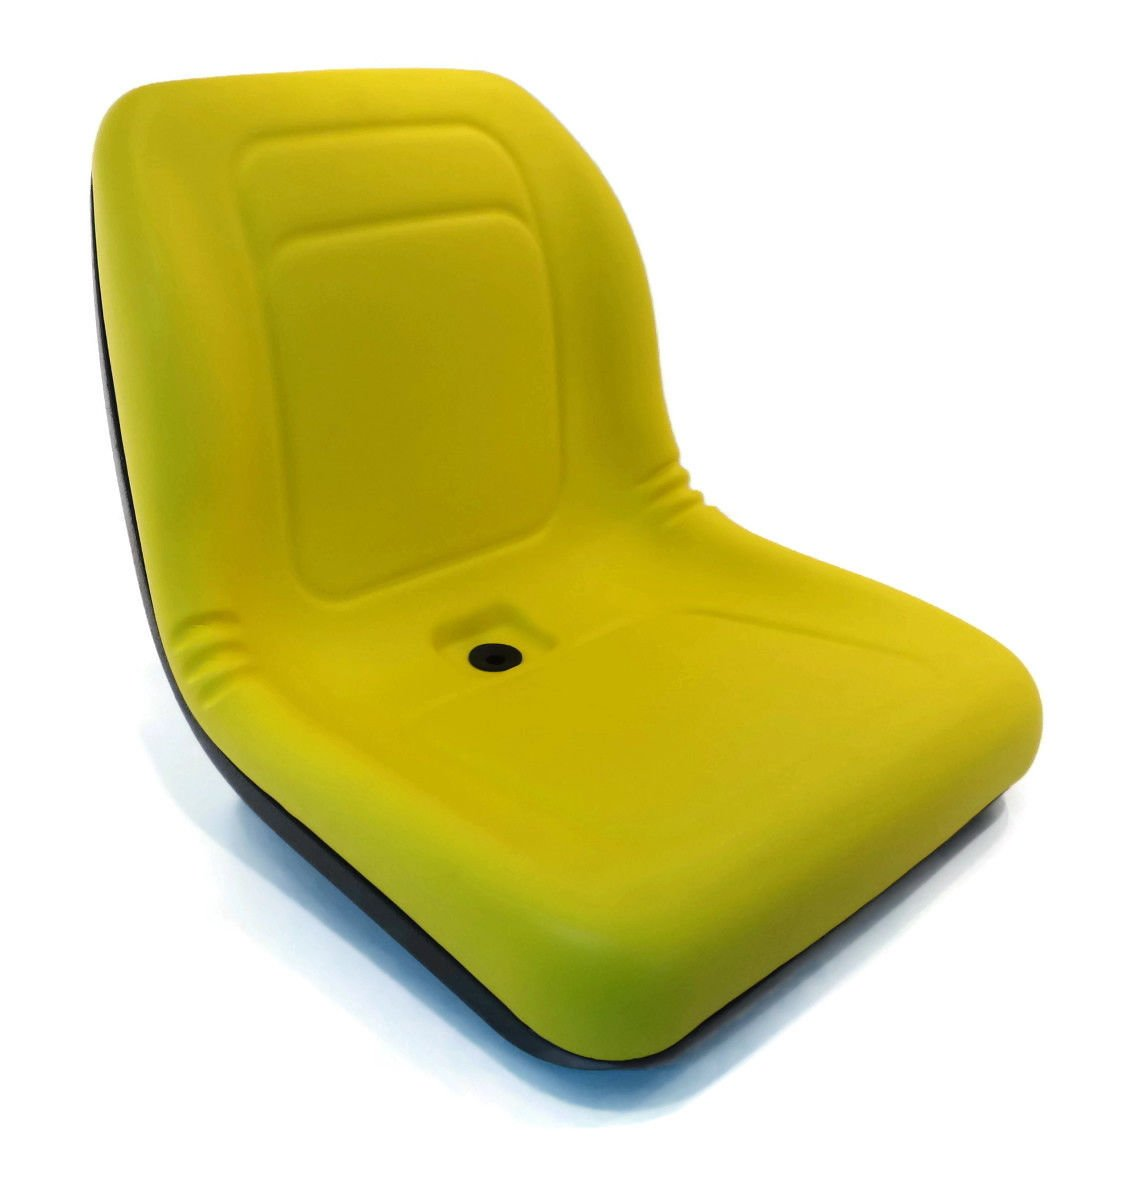 A&I Products New Yellow HIGH Back SEAT for John Deere Lawn Mower Models 325 335 345 415 425 by The ROP Shop